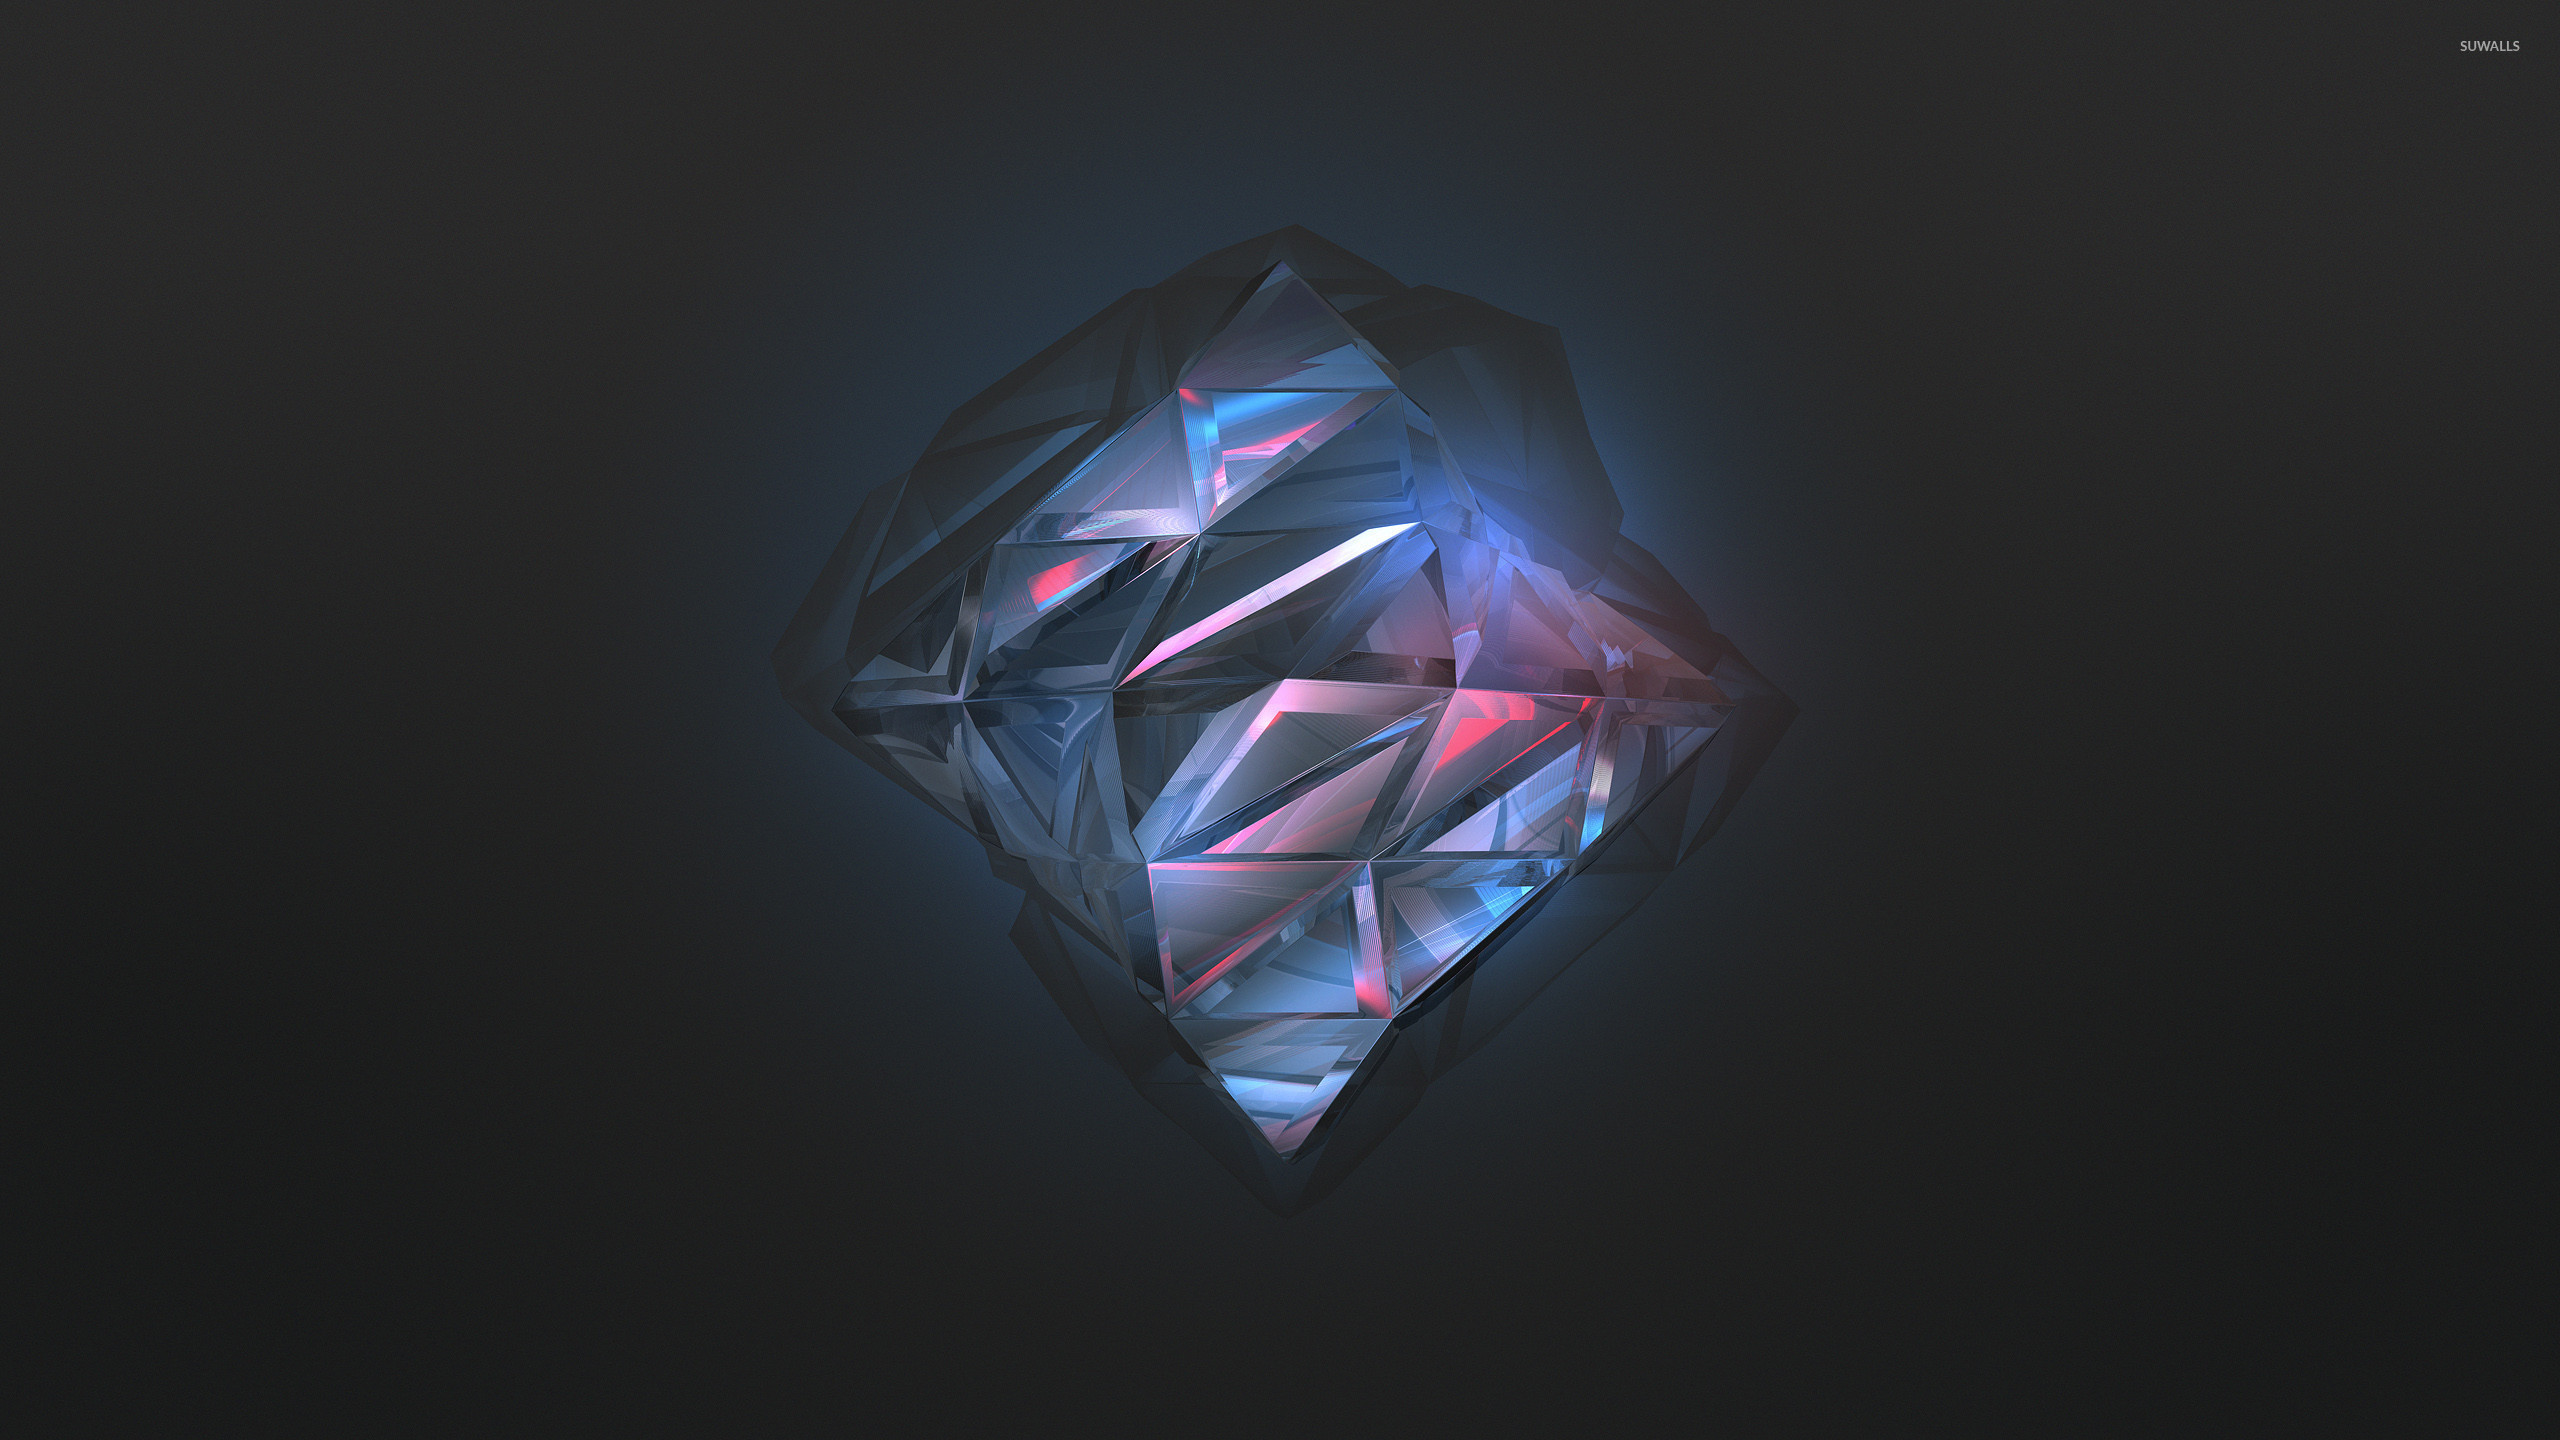 Blue Diamond Wallpaper Abstract Wallpapers 40970